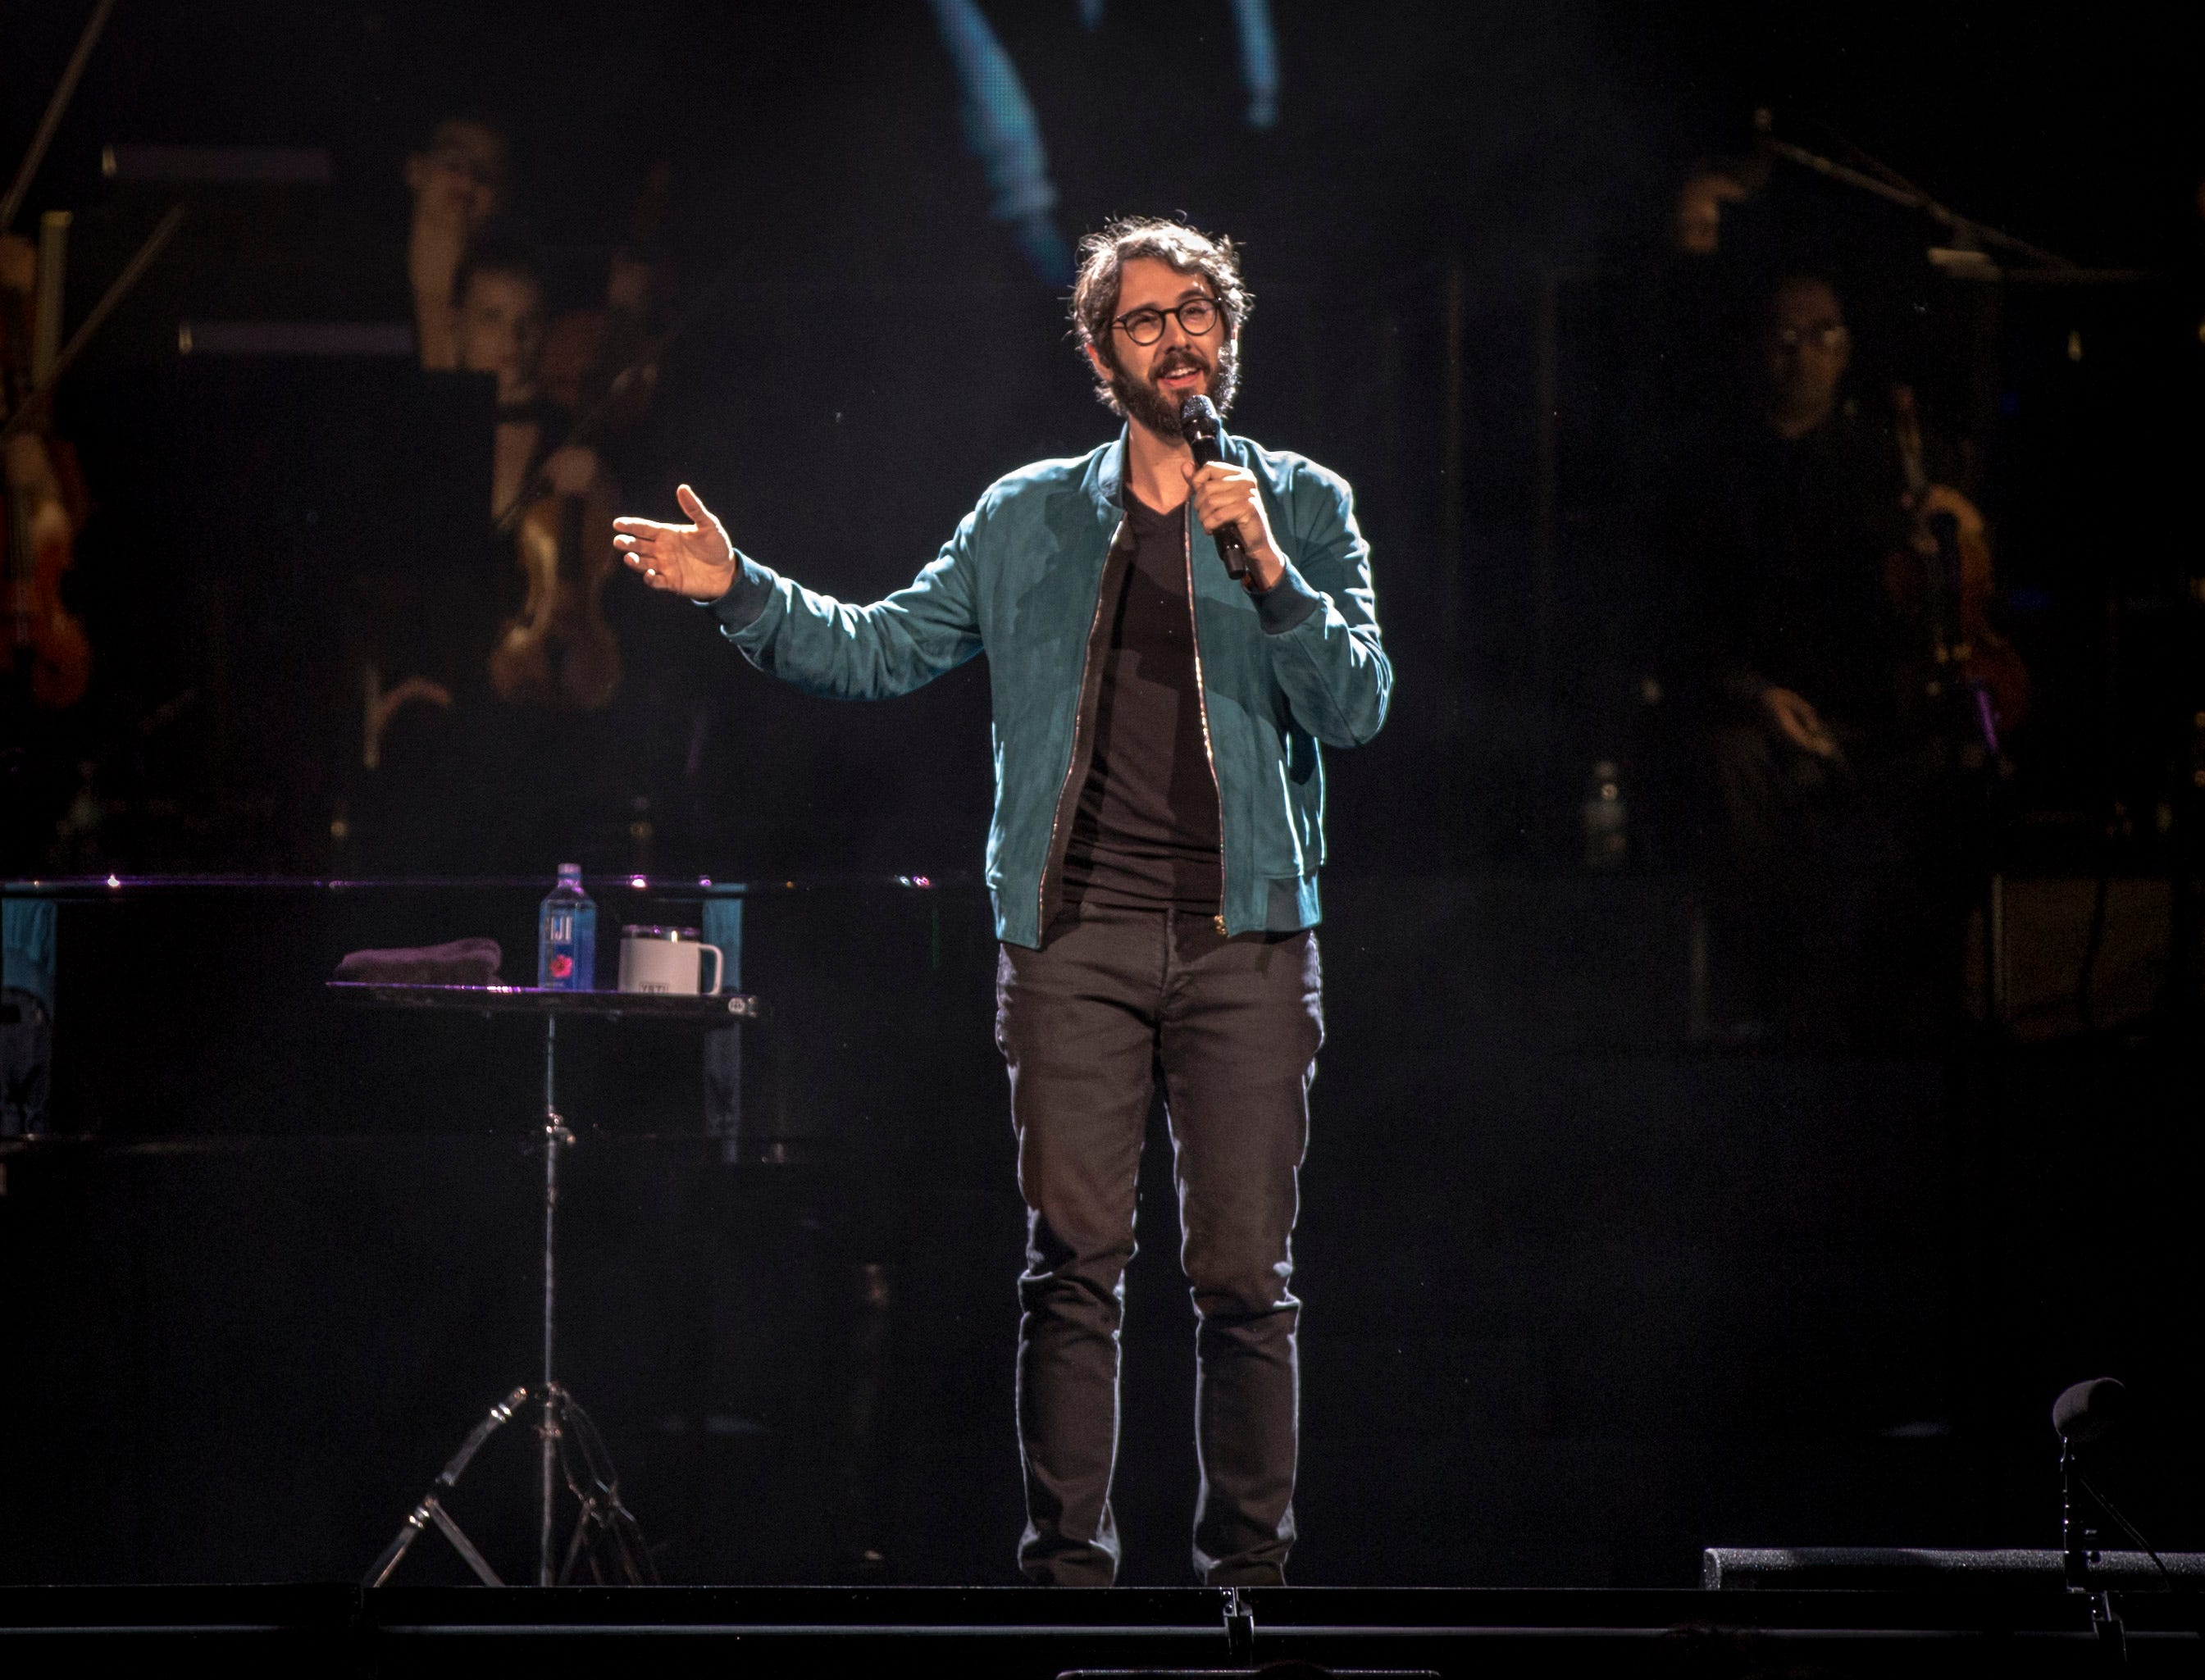 Josh Groban at Fiserv Forum